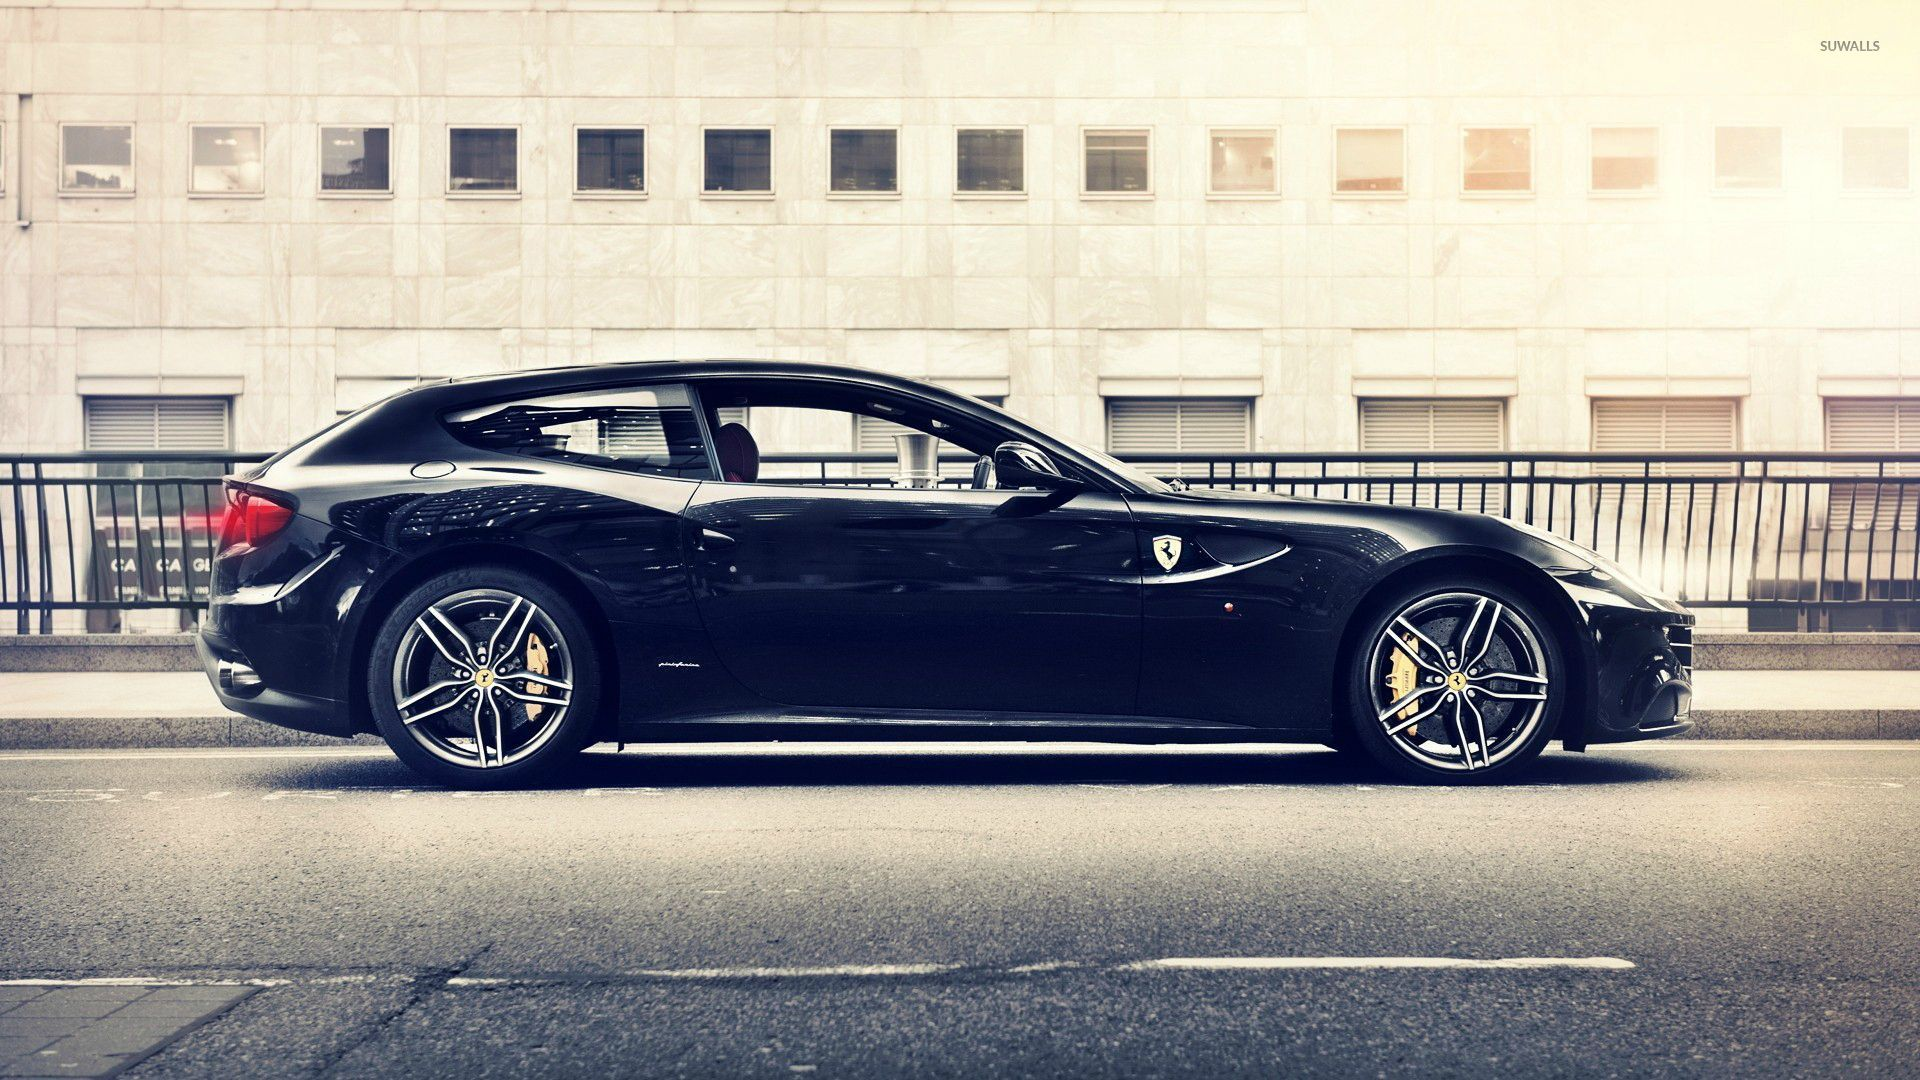 Off Road Cars Hd Wallpapers Ferrari Ff Wallpaper Car Wallpapers 27281